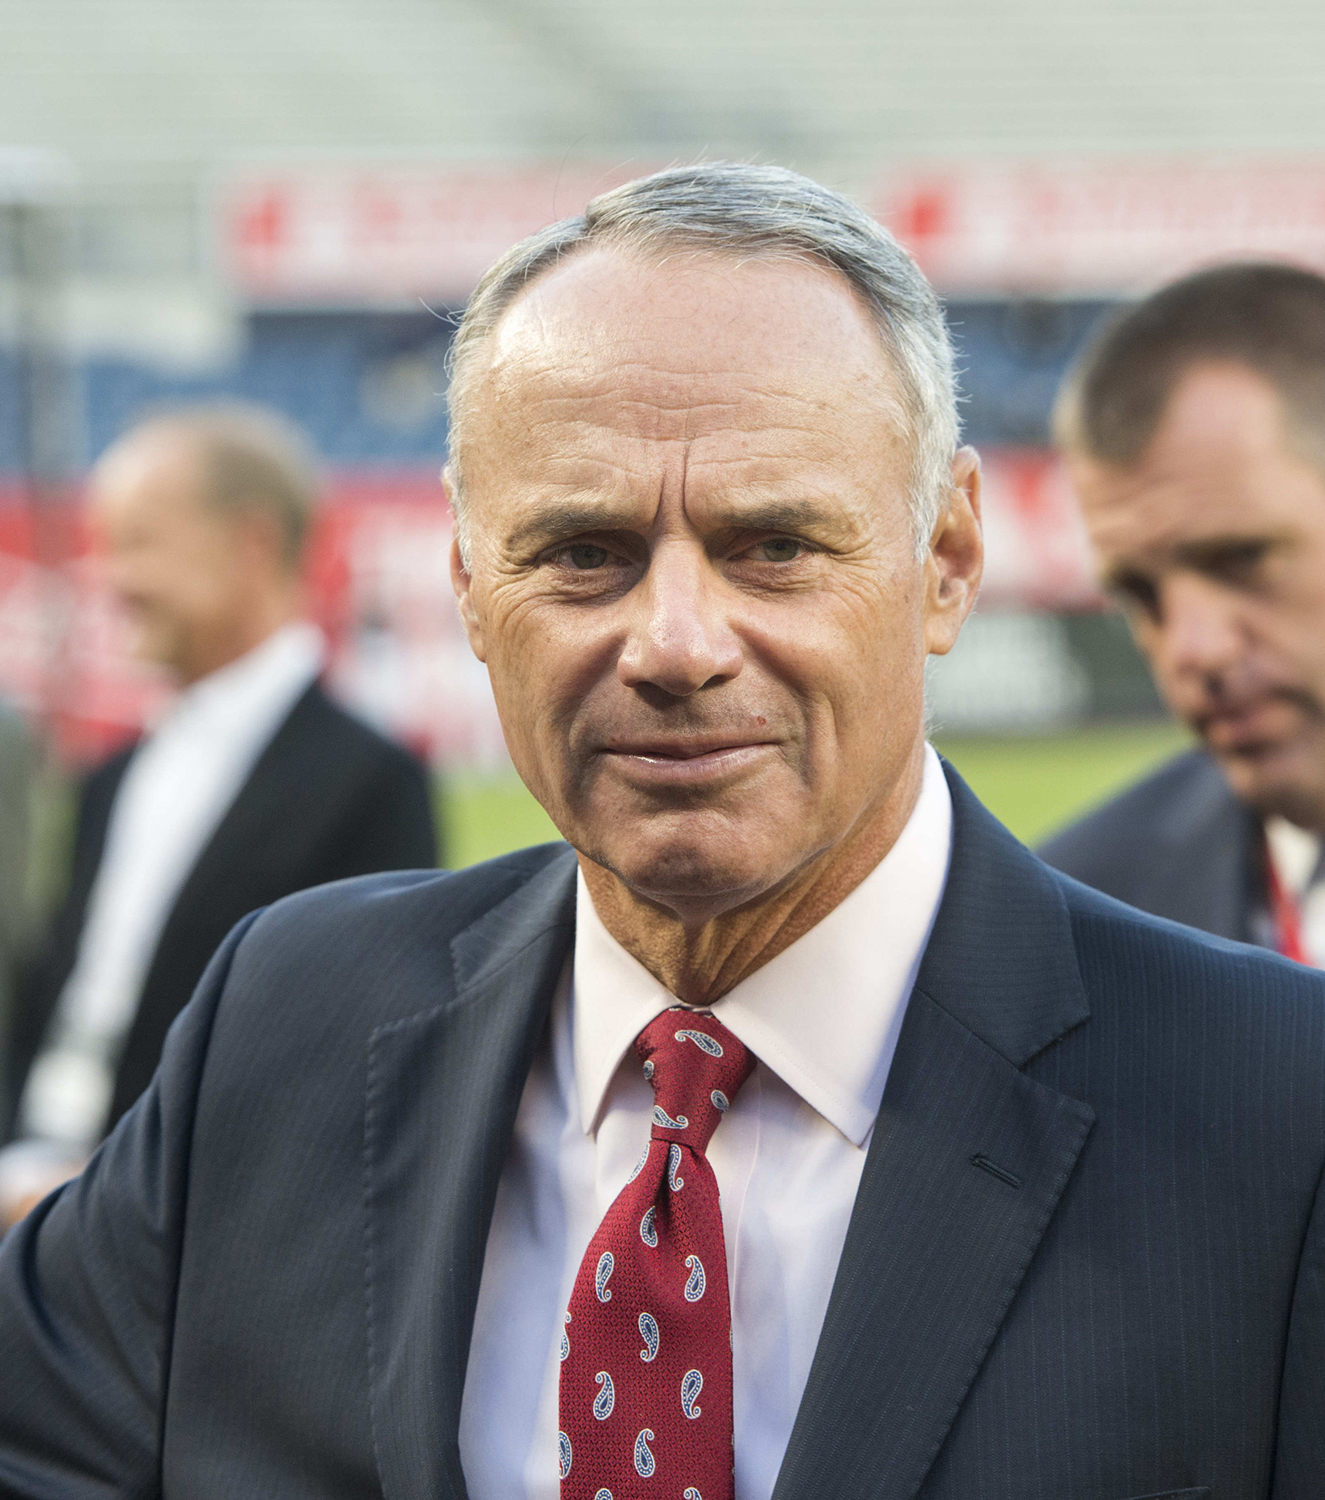 Major League Baseball Commissioner Rob Manfred before the New York Yankees take on the Minnesota Twins in the American League Wild Card game at Yankee Stadium in New York on Oct. 3, 2017.